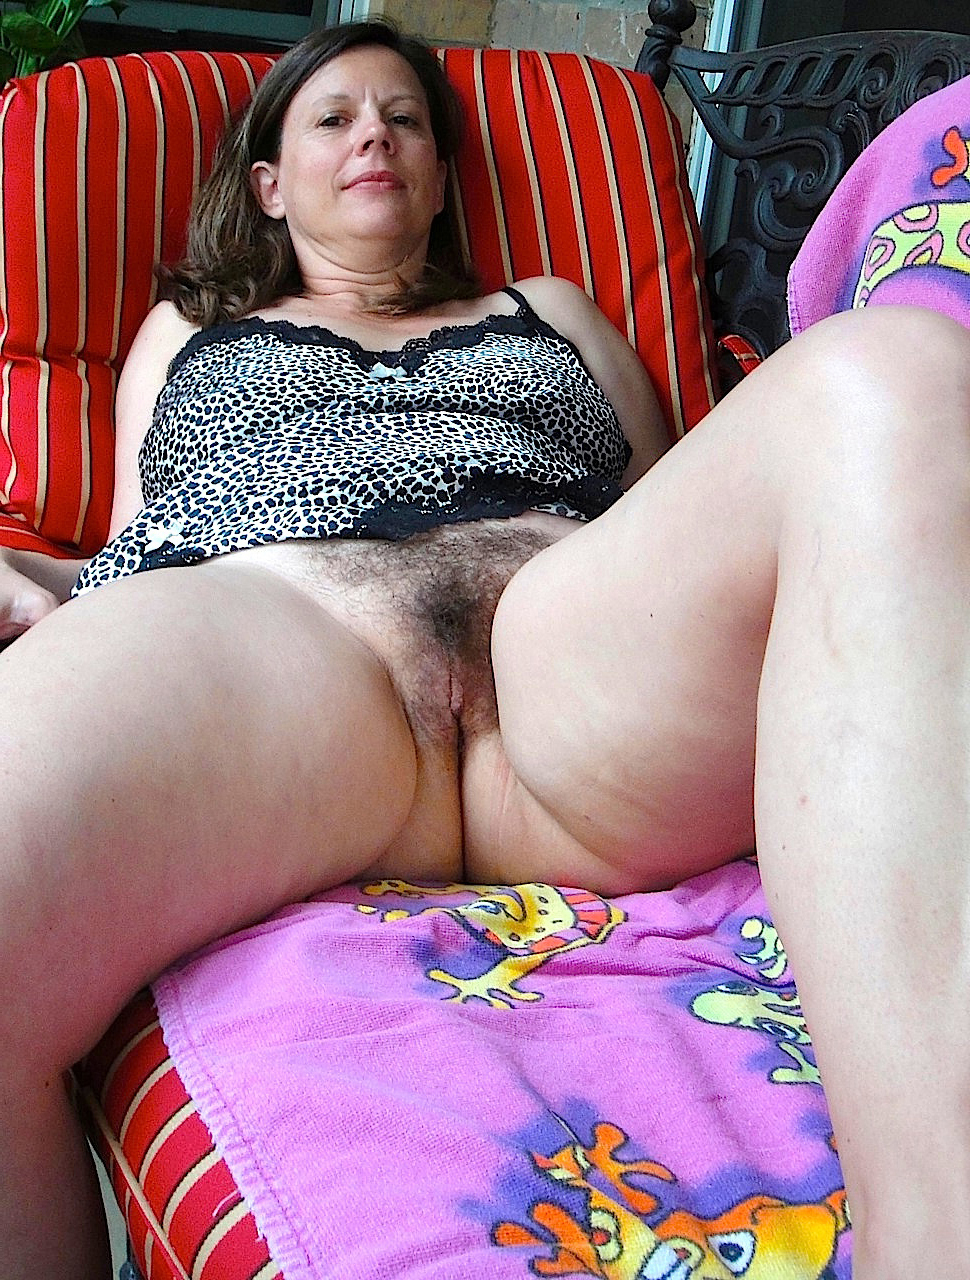 hairy house wife truth or dare pics